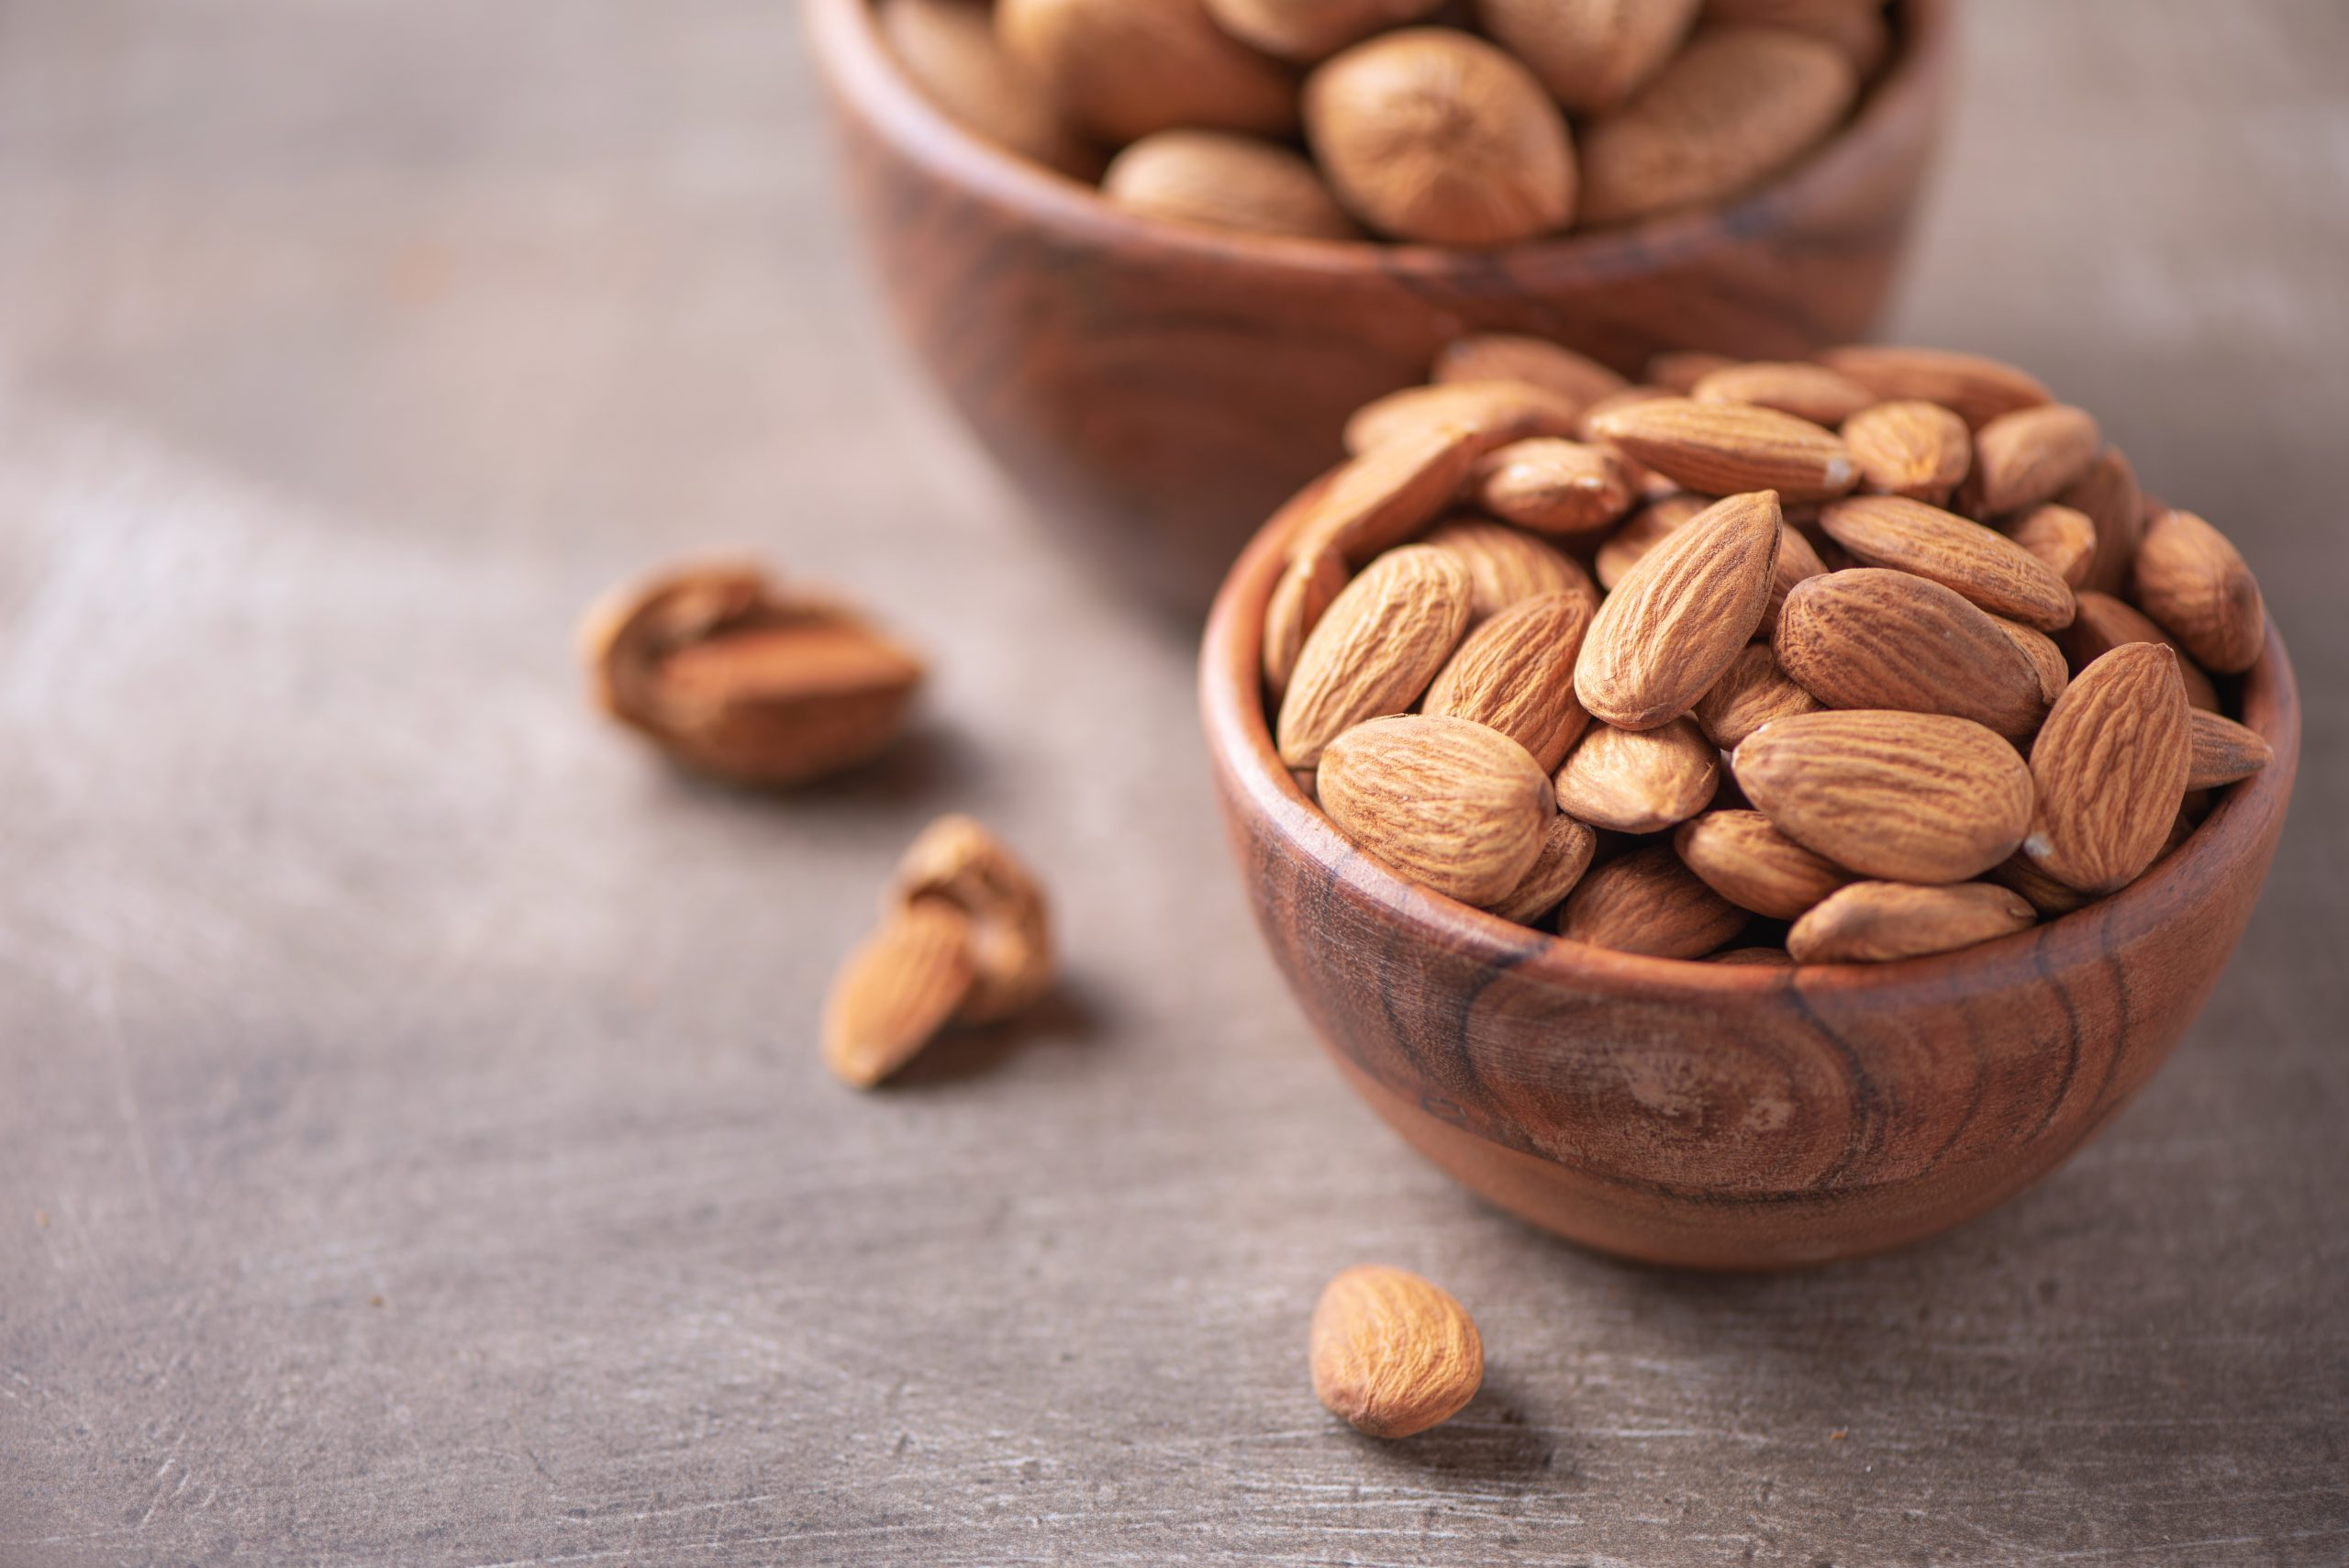 Almond nuts in wooden bowl on wood textured background. Copy space. Superfood, vegan, vegetarian food concept. Macro of almond nut texture, selective focus. Healthy snack